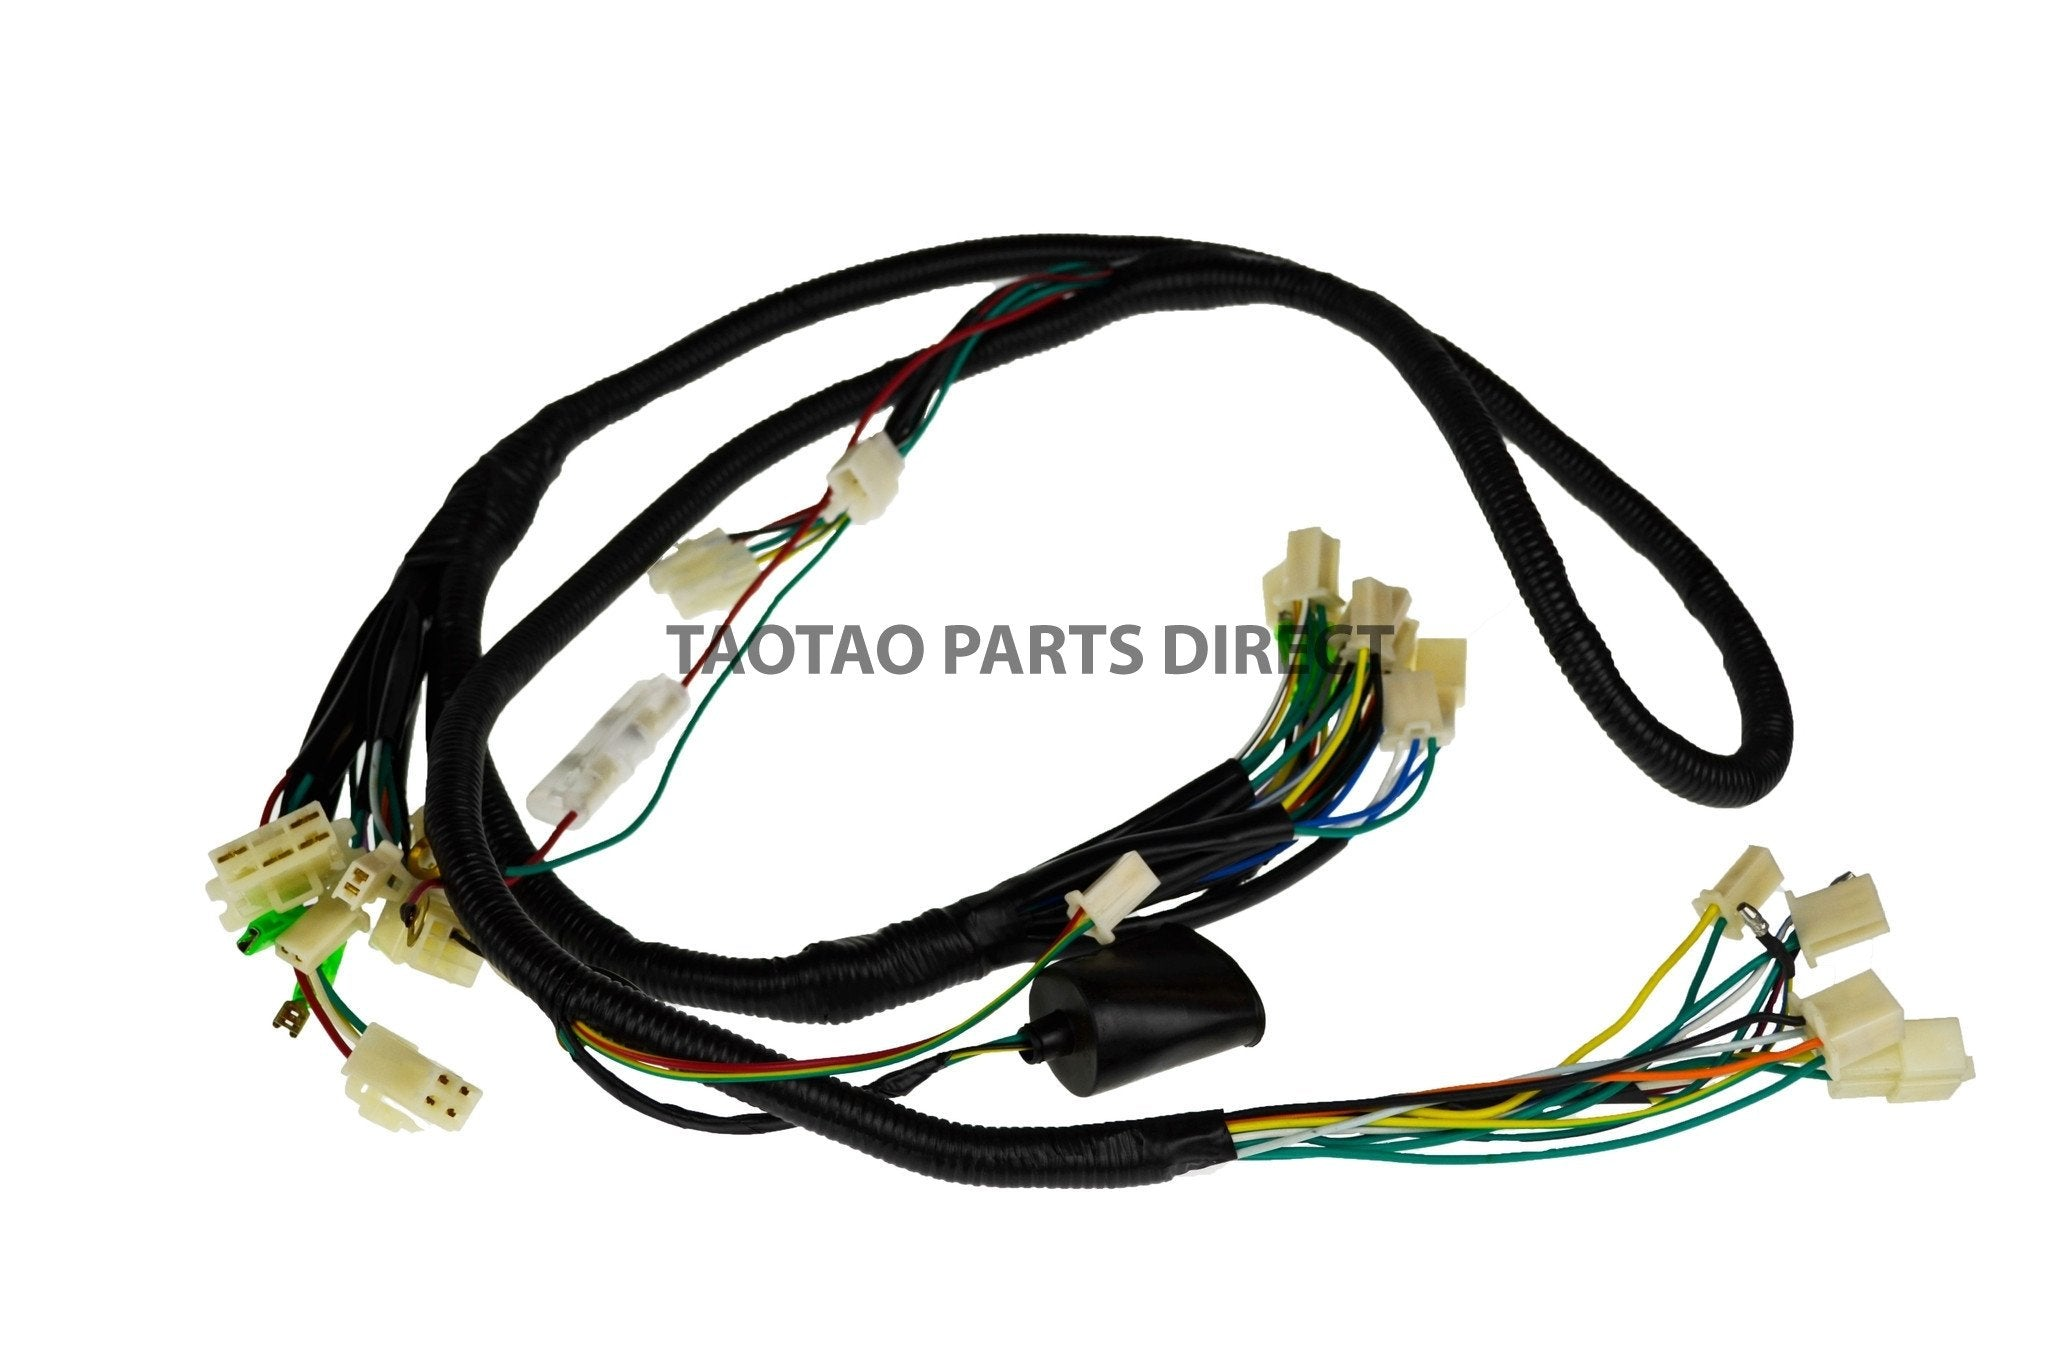 ATM50A1 Wire Harness #18 - TaoTaoPartsDirect.com